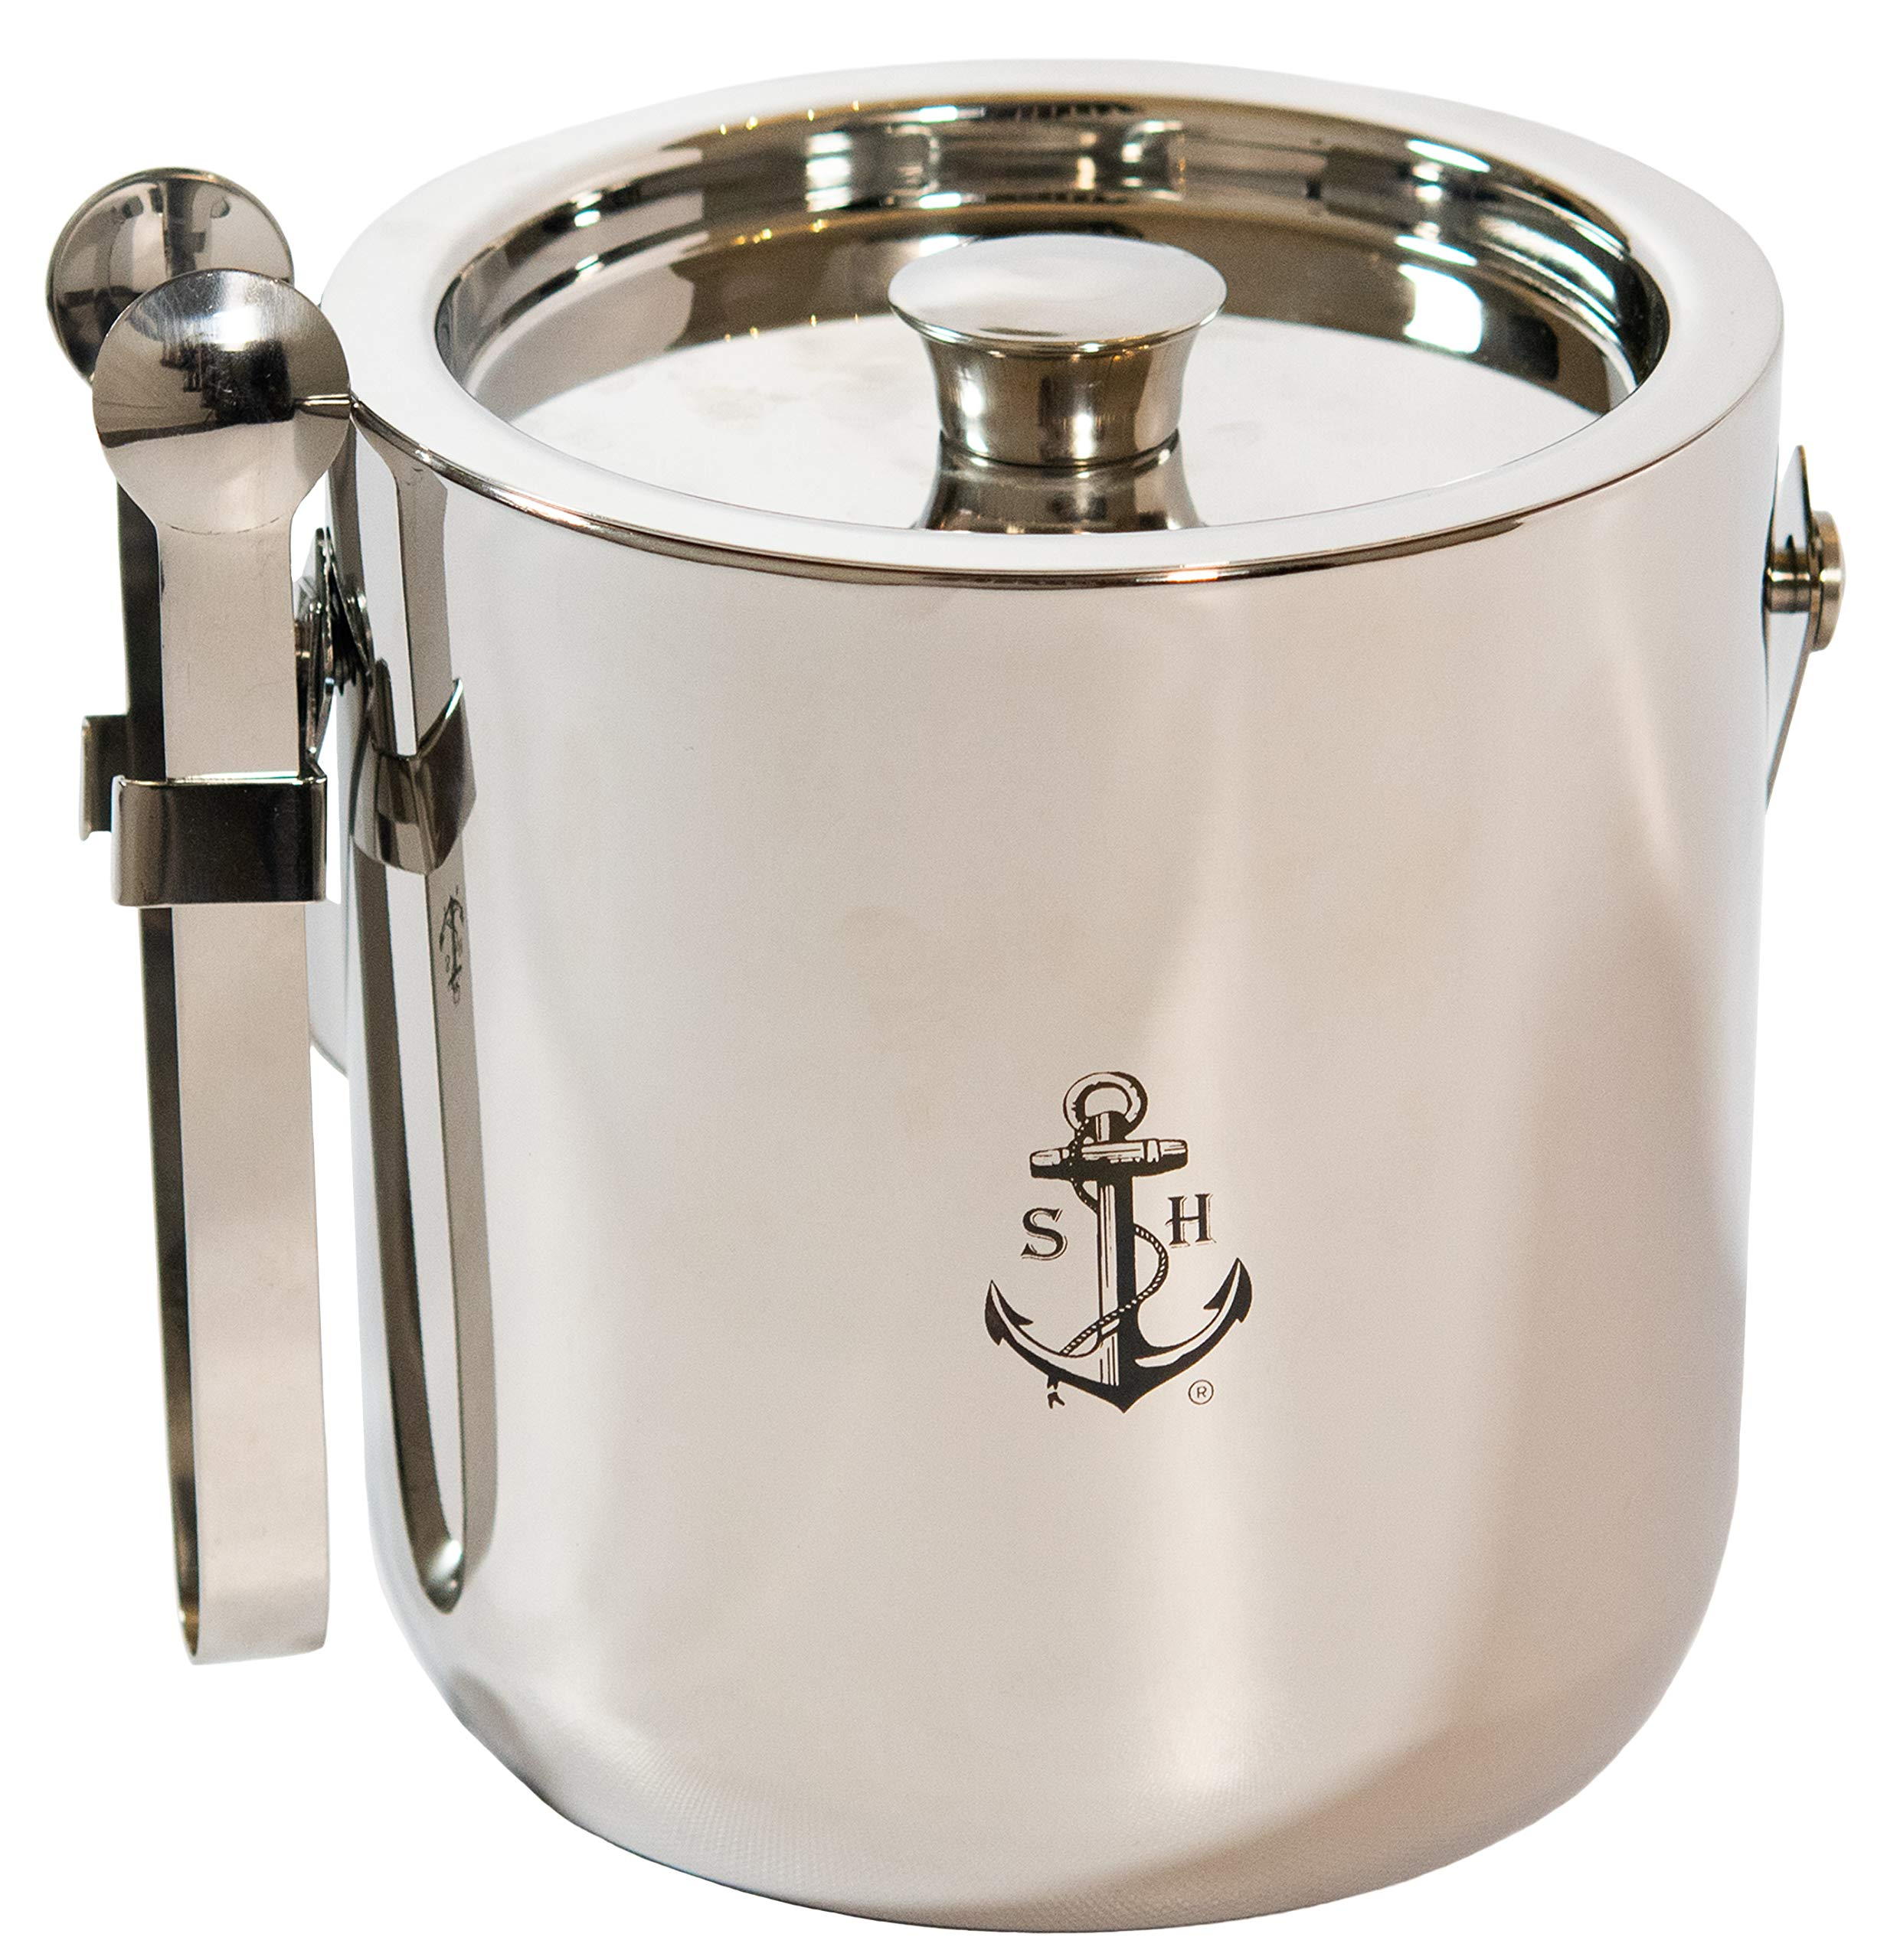 Stock Harbor 3 Liter Insulated Double Wall Stainless Steel Ice Bucket with Tongs Storage and Sealed Lid by S H STOCK HARBOR